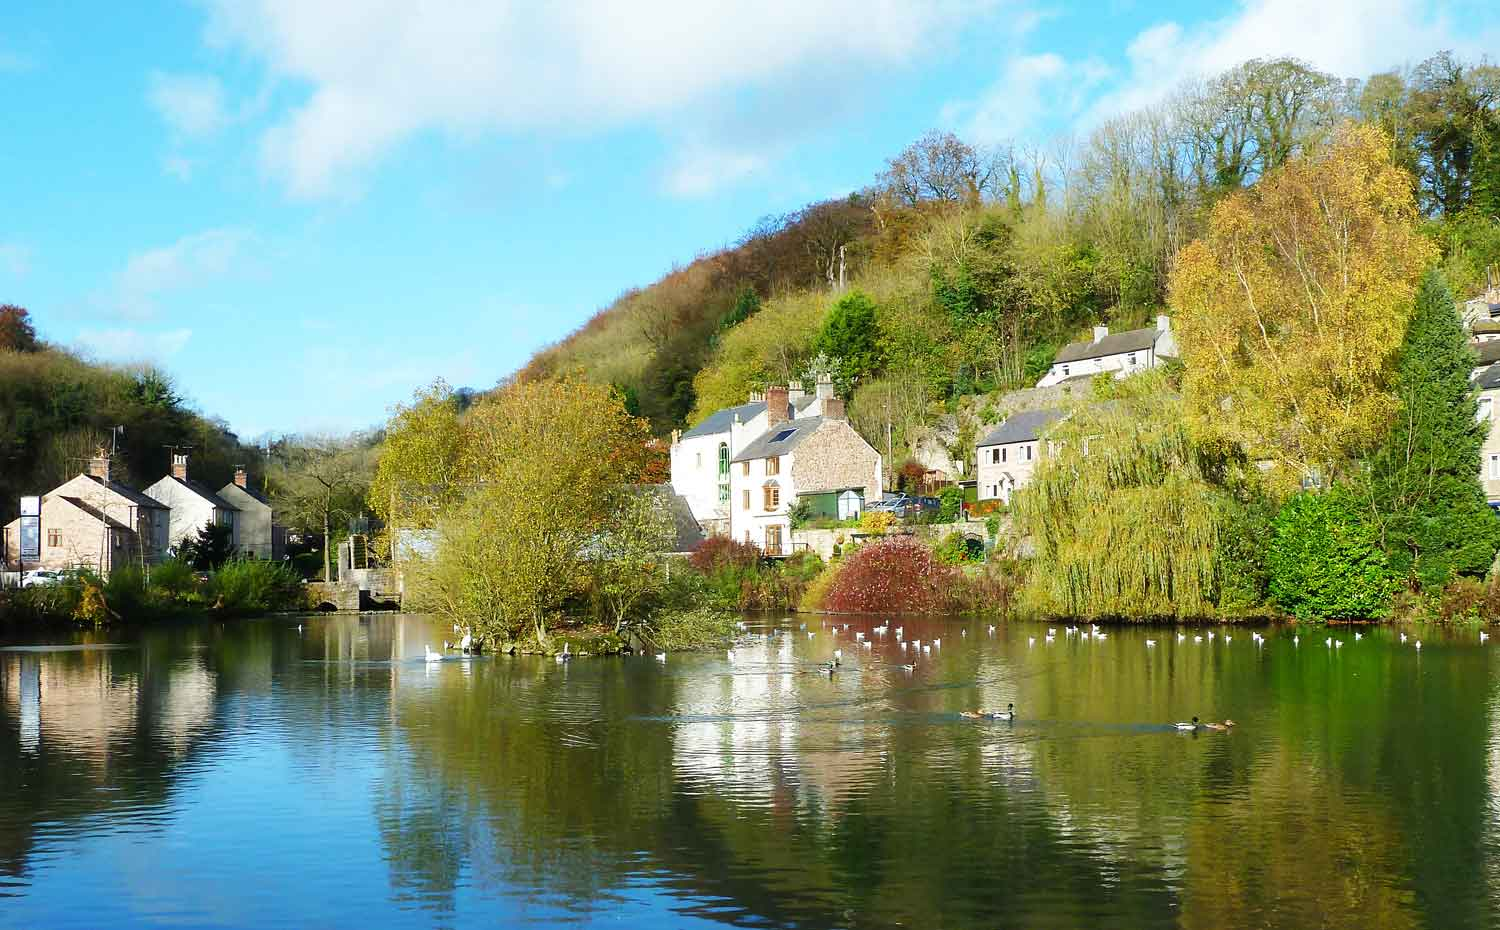 View of the picturesque Cromford Pond near Quiltessential in Derbyshire